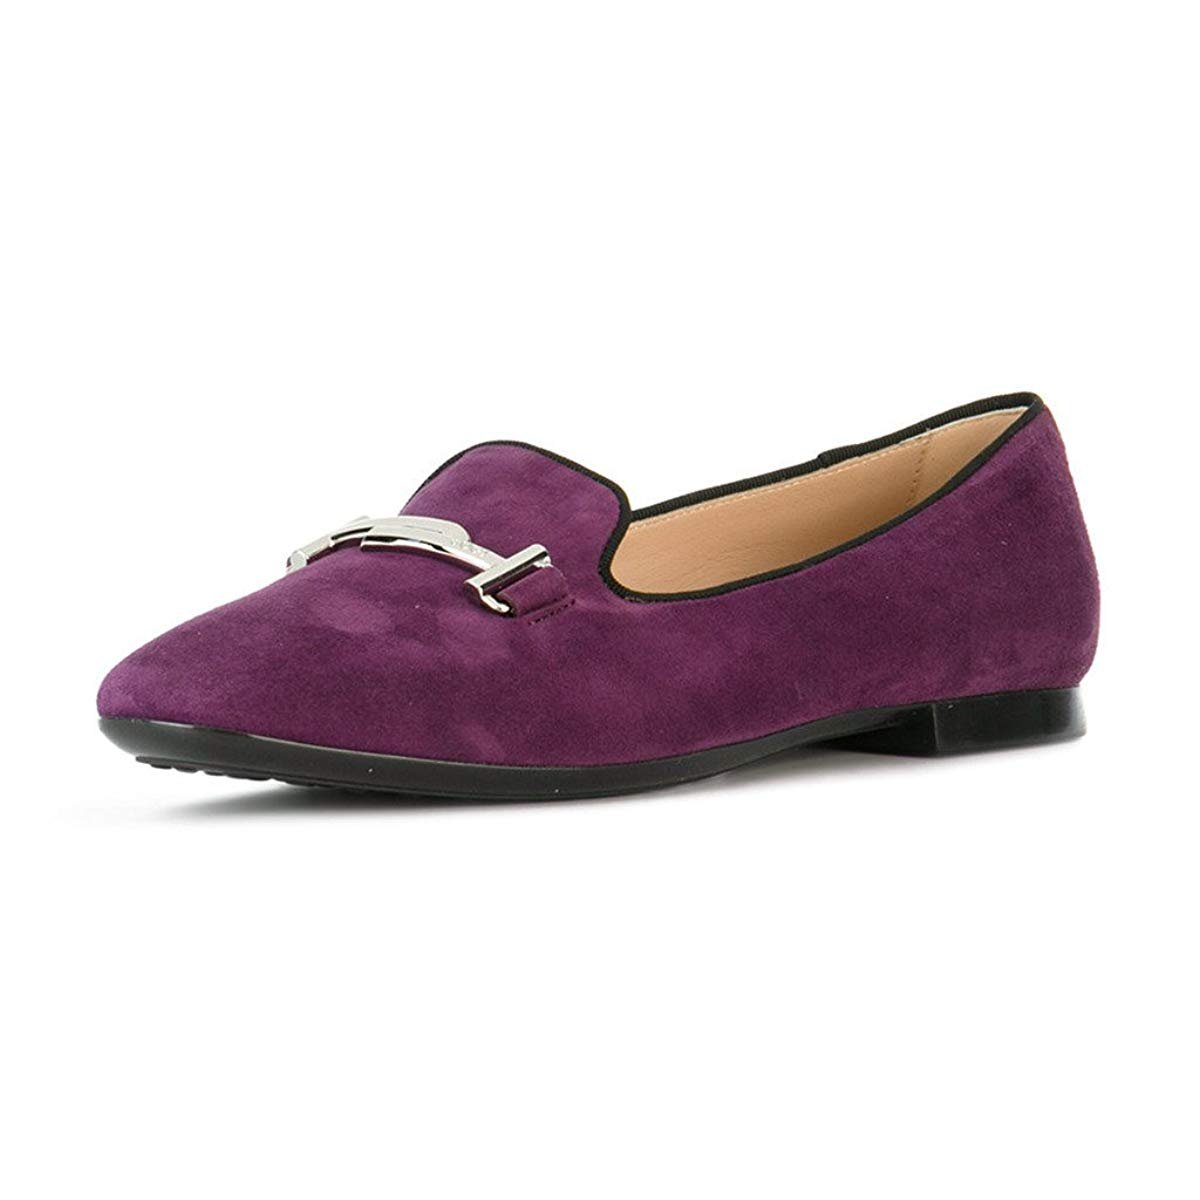 XYD Comfortable Low Heel Slip On Suede Flats Pointed Toe Ballet Loafer Dress Shoes for Women B075S9XLMR 8 B(M) US|Dark Purple